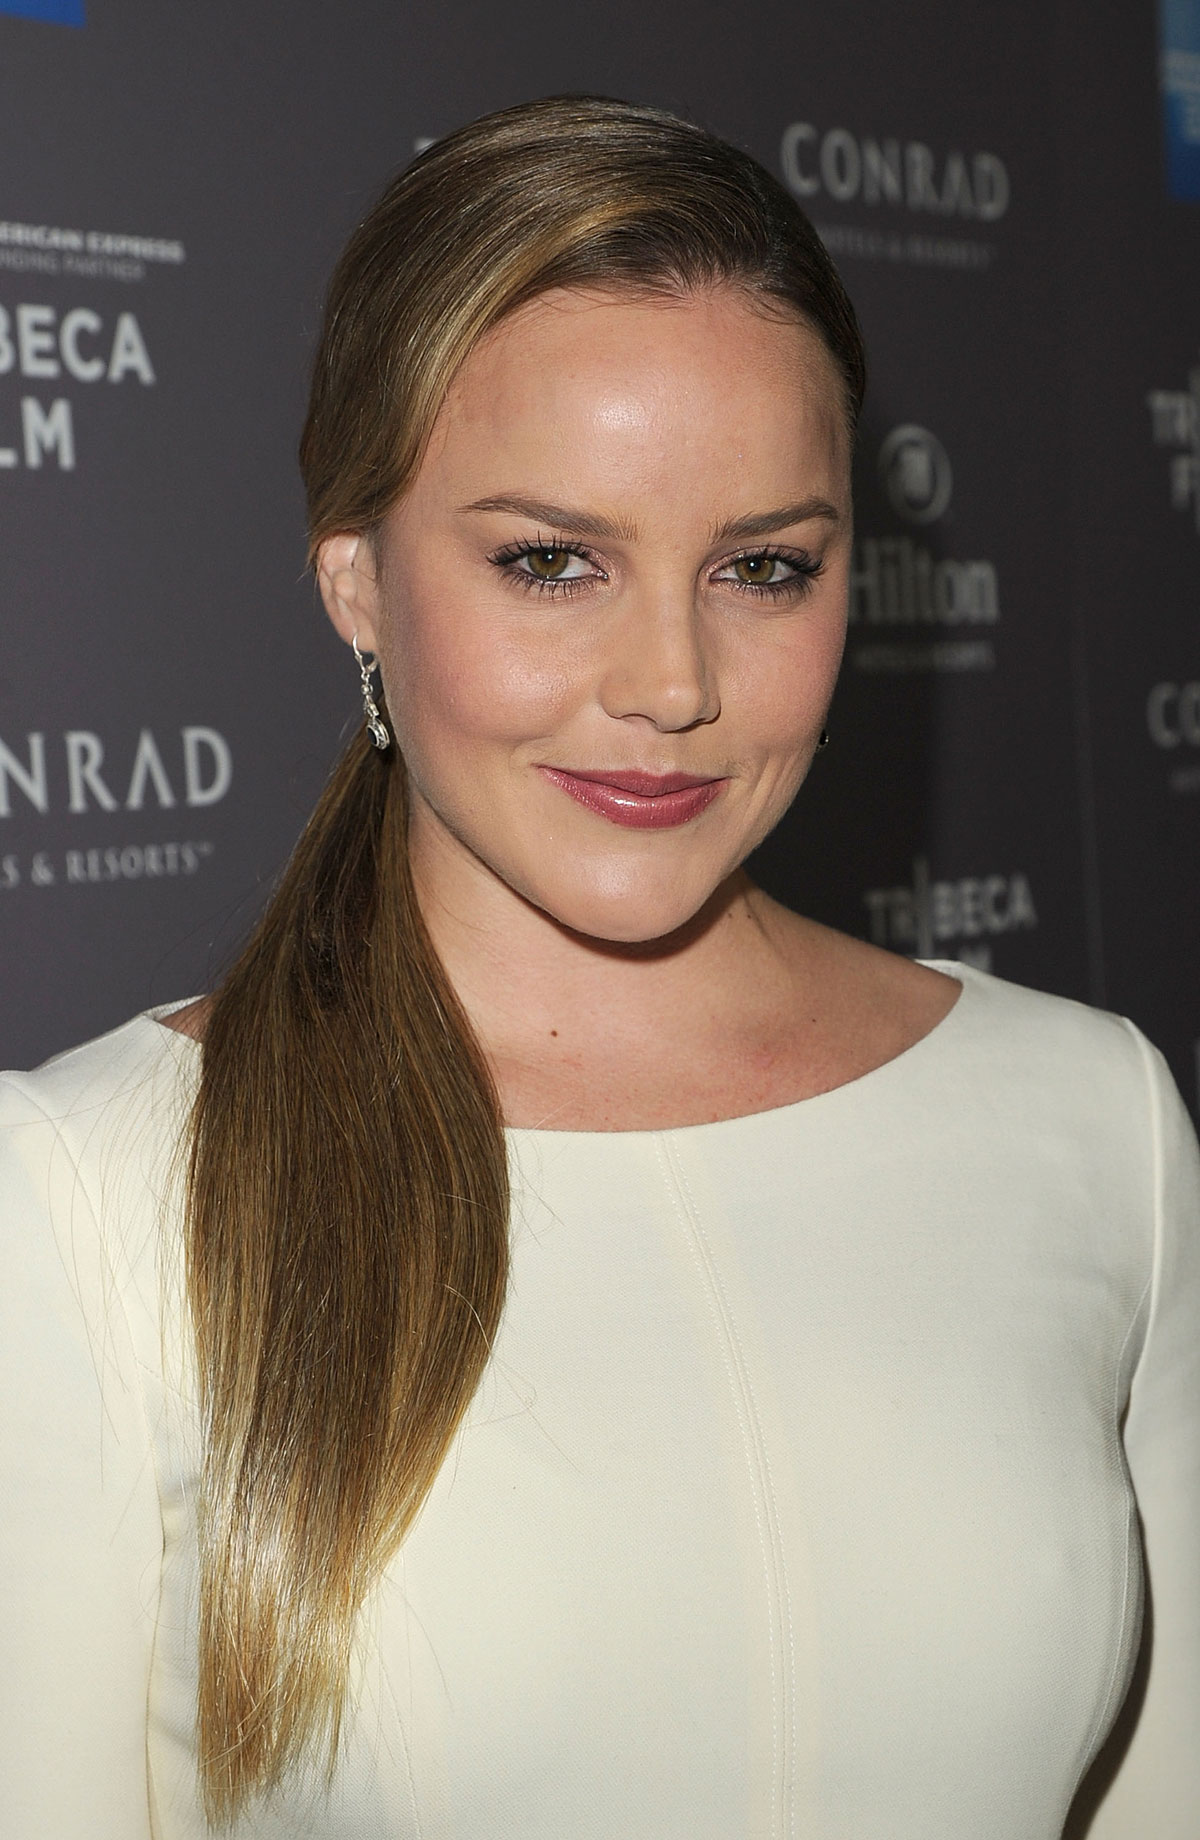 ABBIE CORNISH at Tribeca Film Festival in Beverly Hills - HawtCelebs ... Abbie Cornish